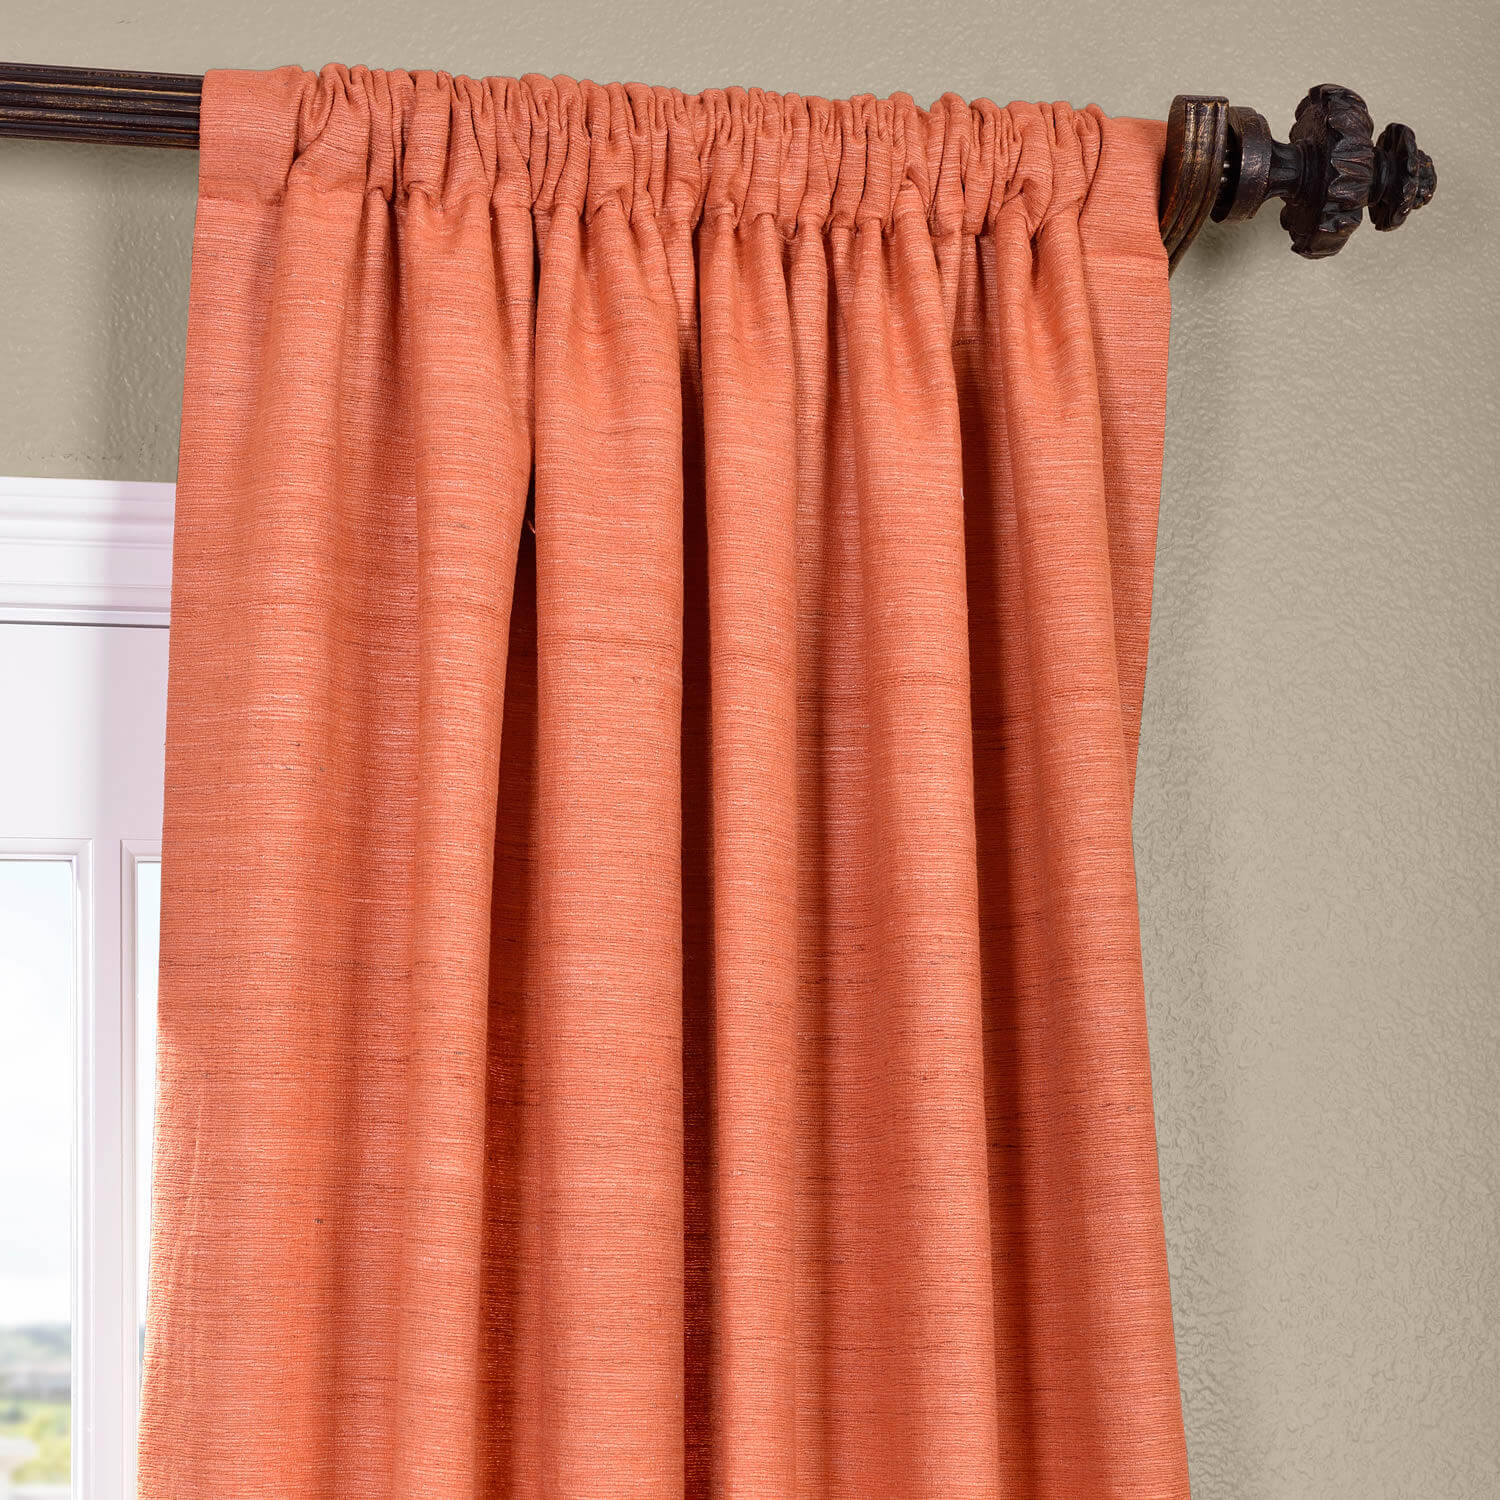 curtains pleat panels pinch faux expand curtain panel marquee flared p silk click to